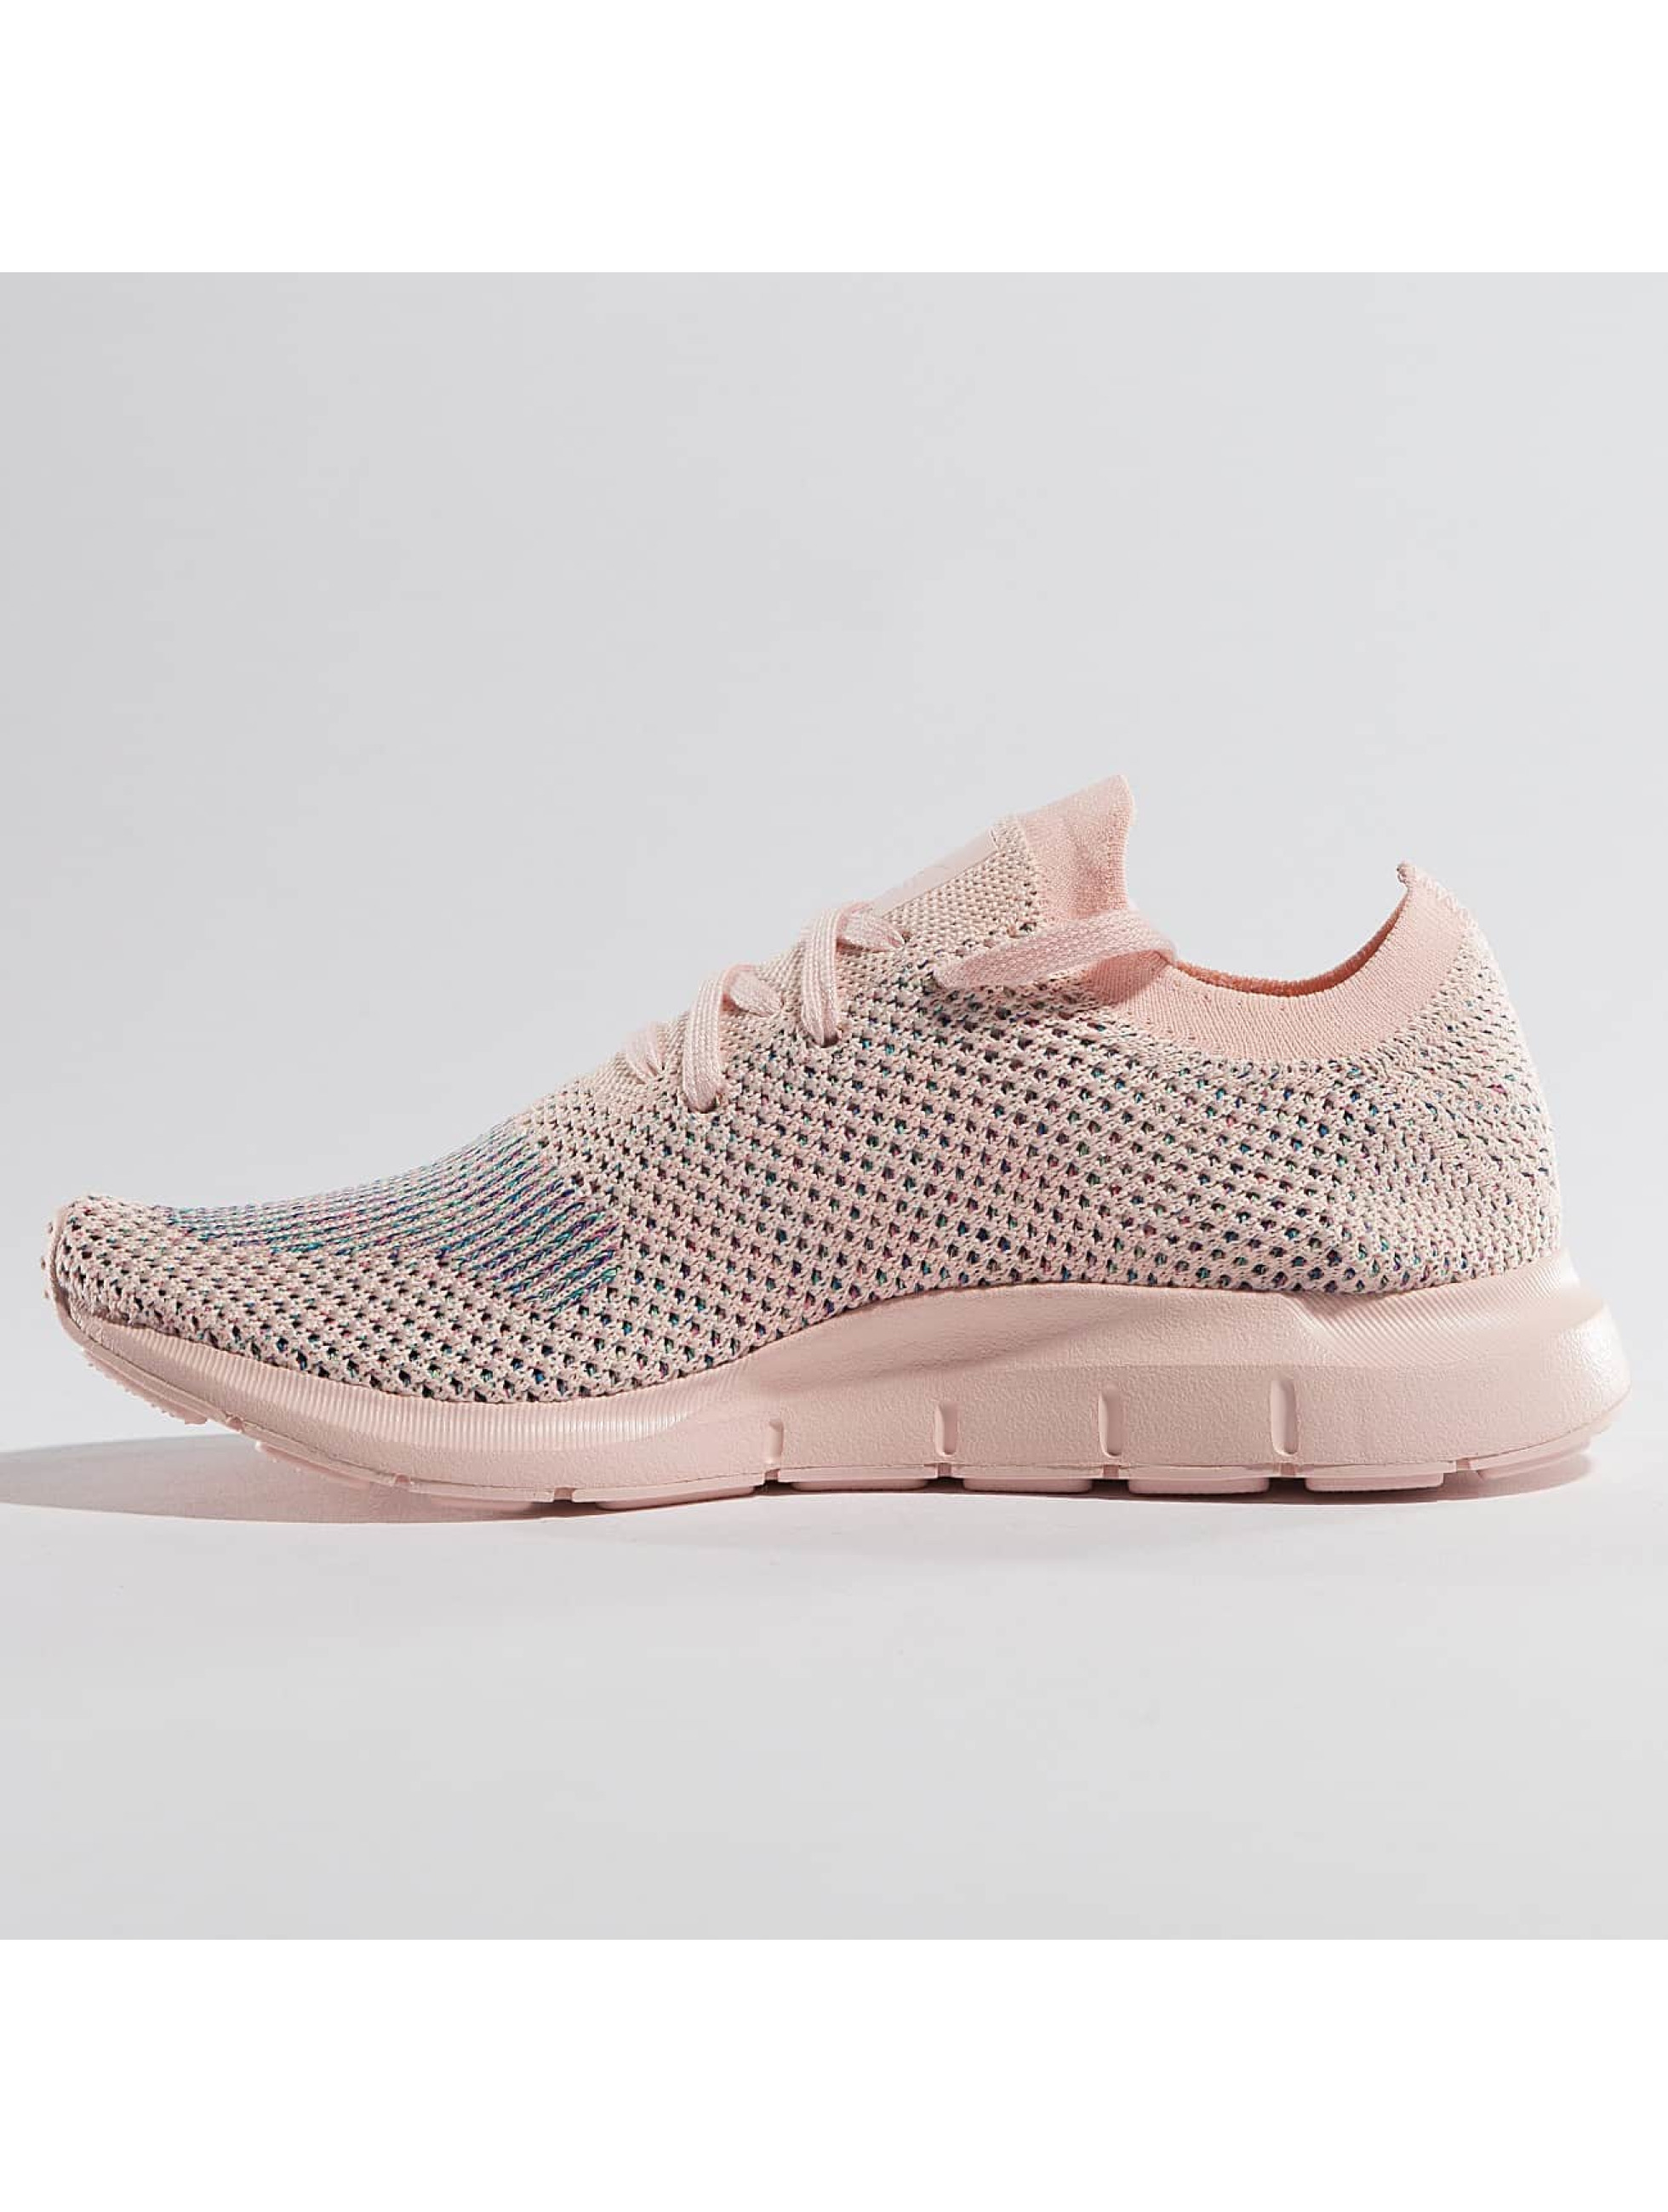 adidas Sneaker Swift Run Primeknit pink